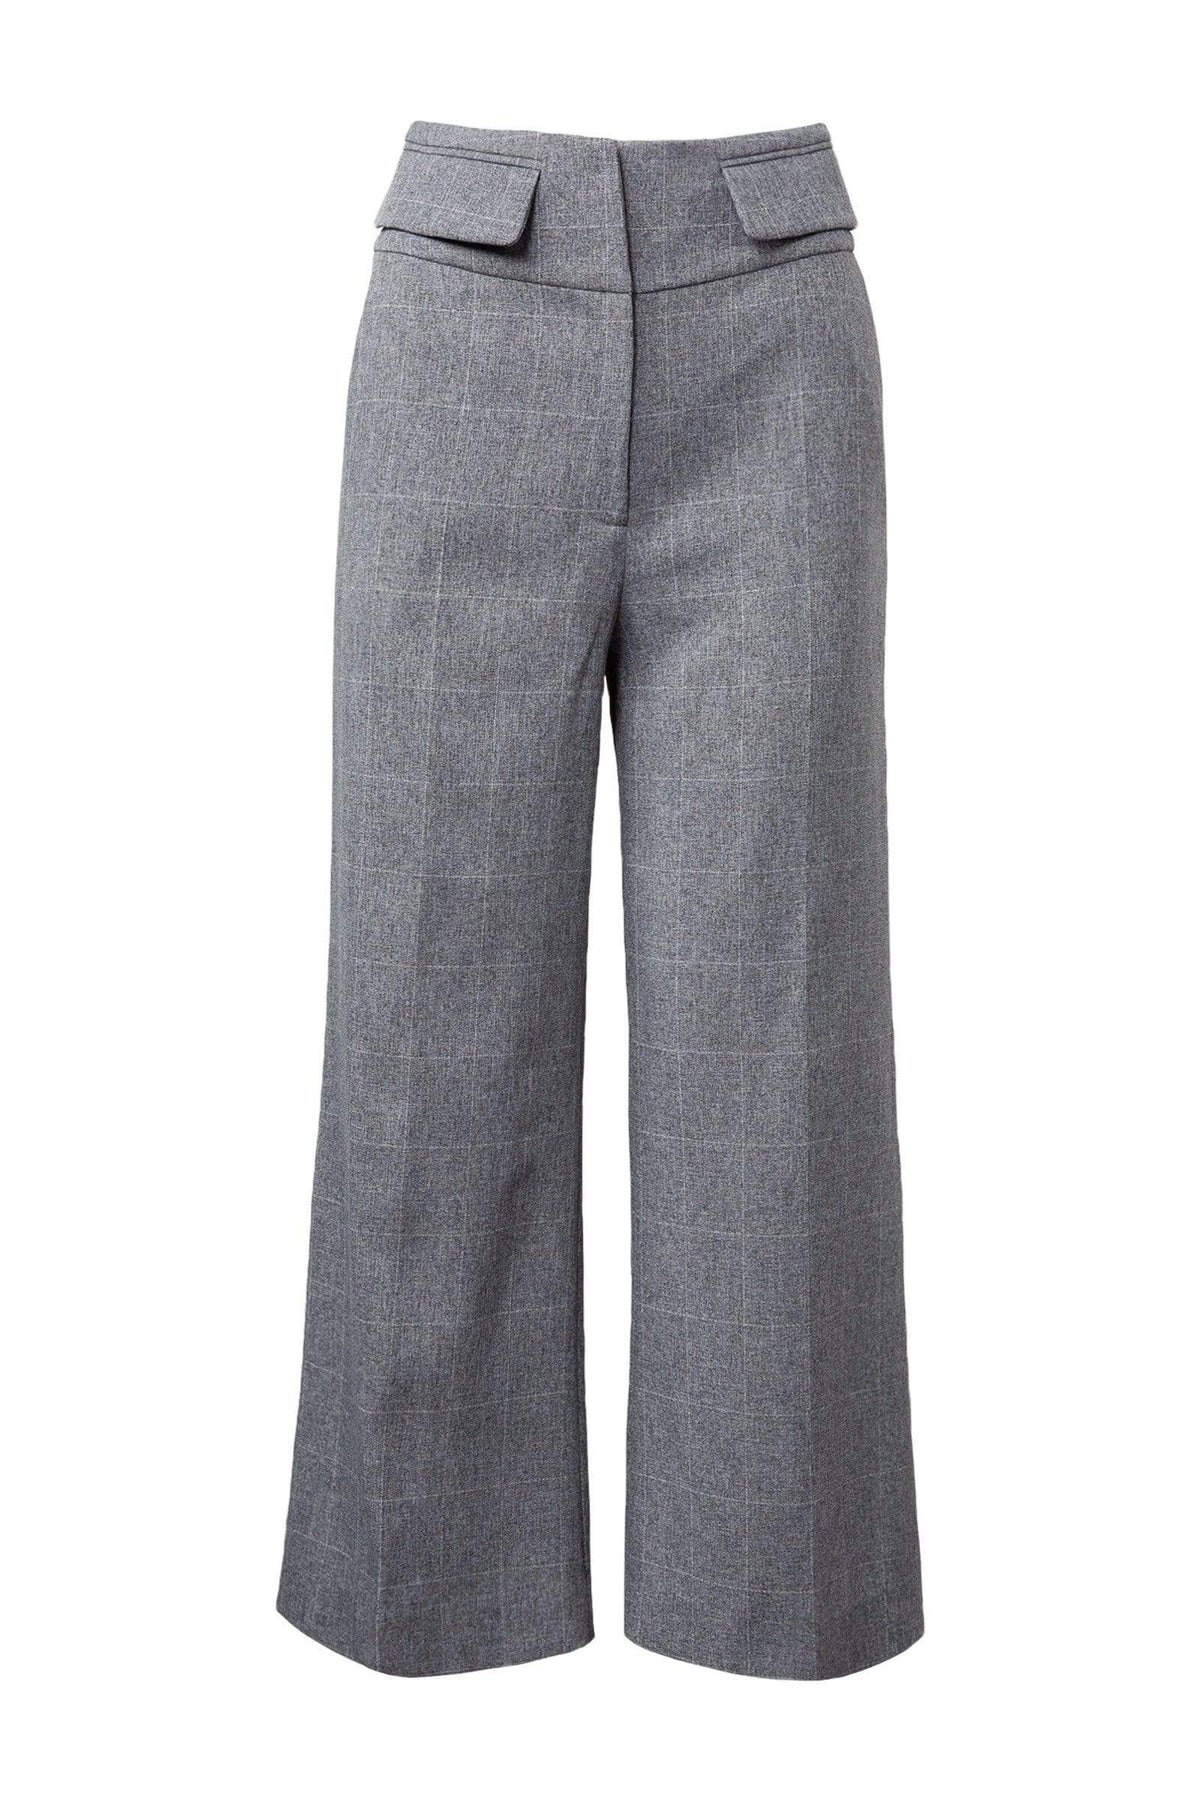 Ash Grey Wide Leg Cropped Trousers